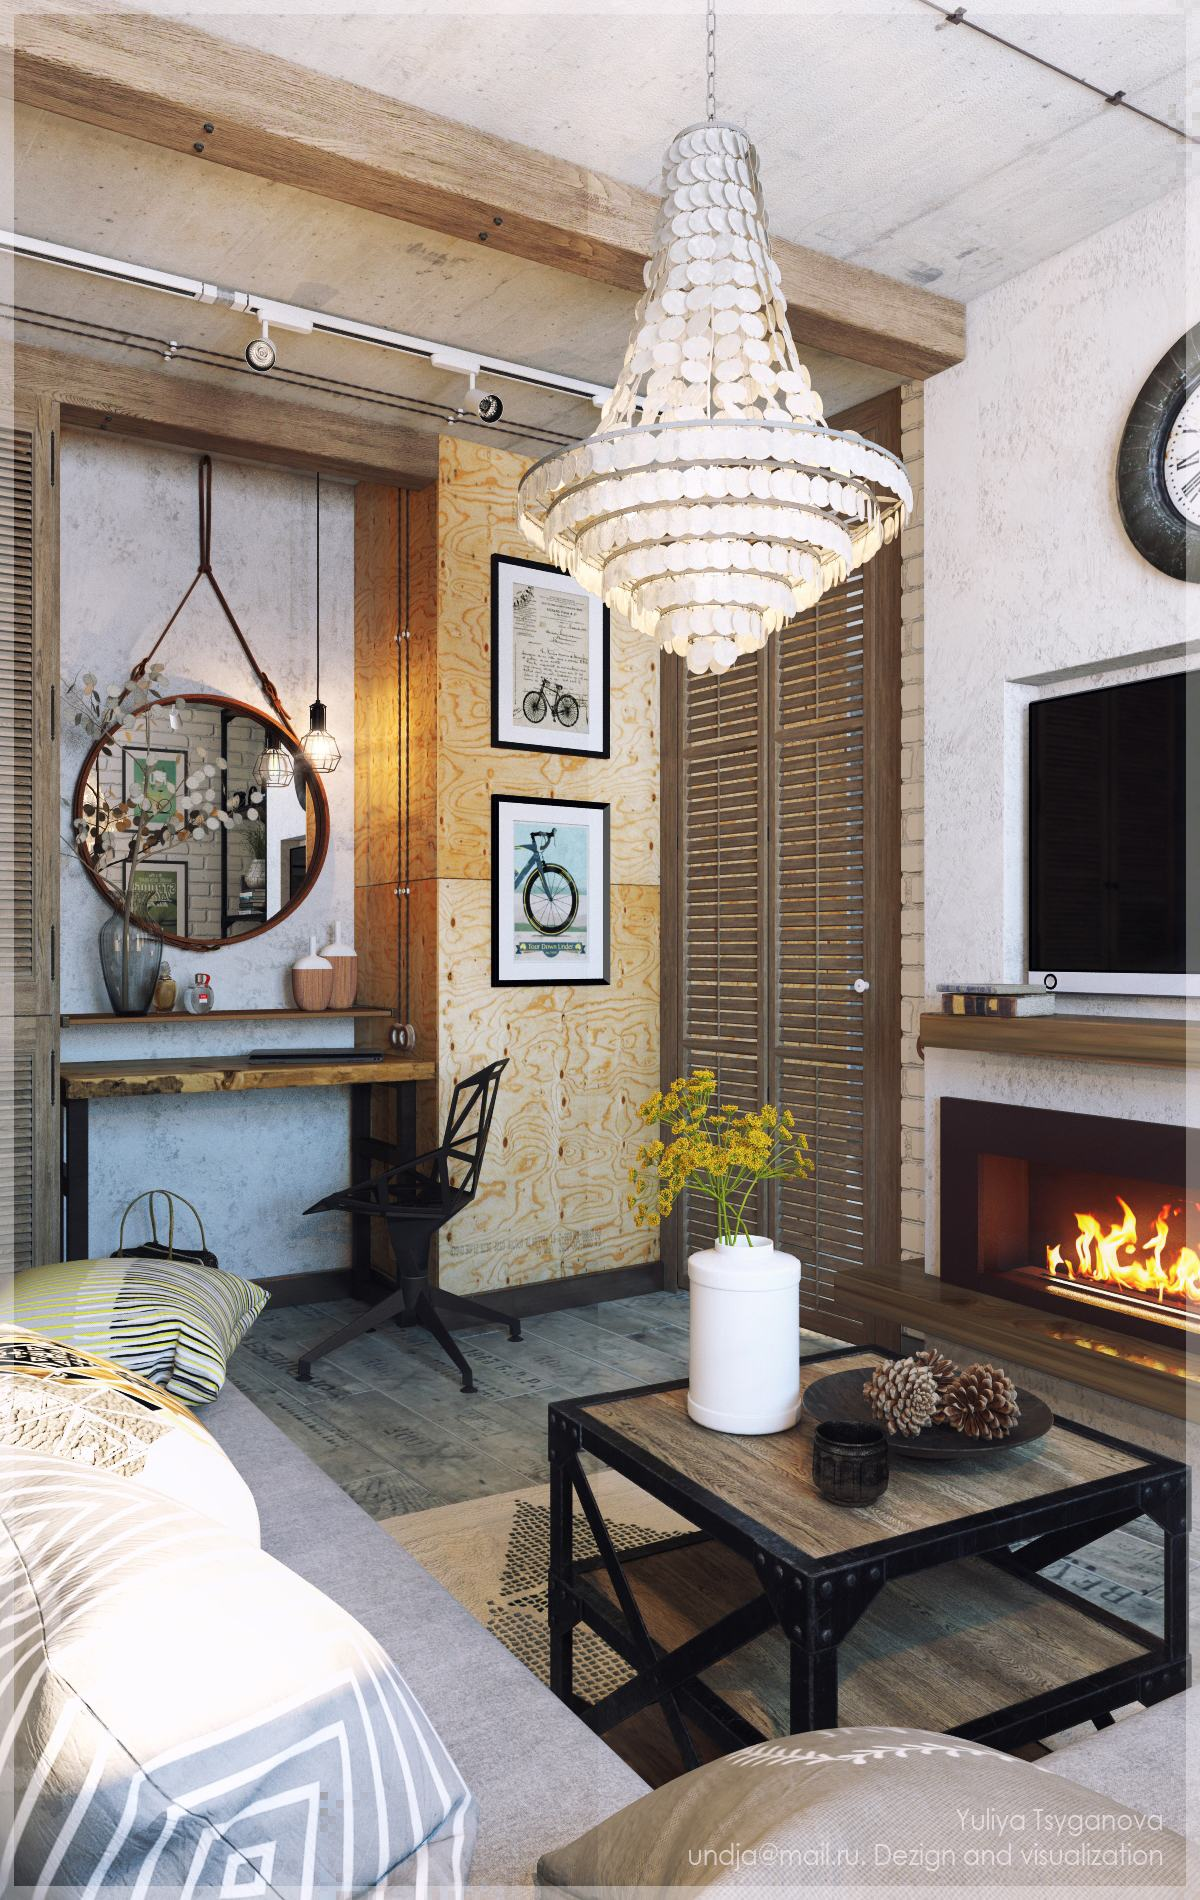 3 Chic Modern & Eclectic Spaces